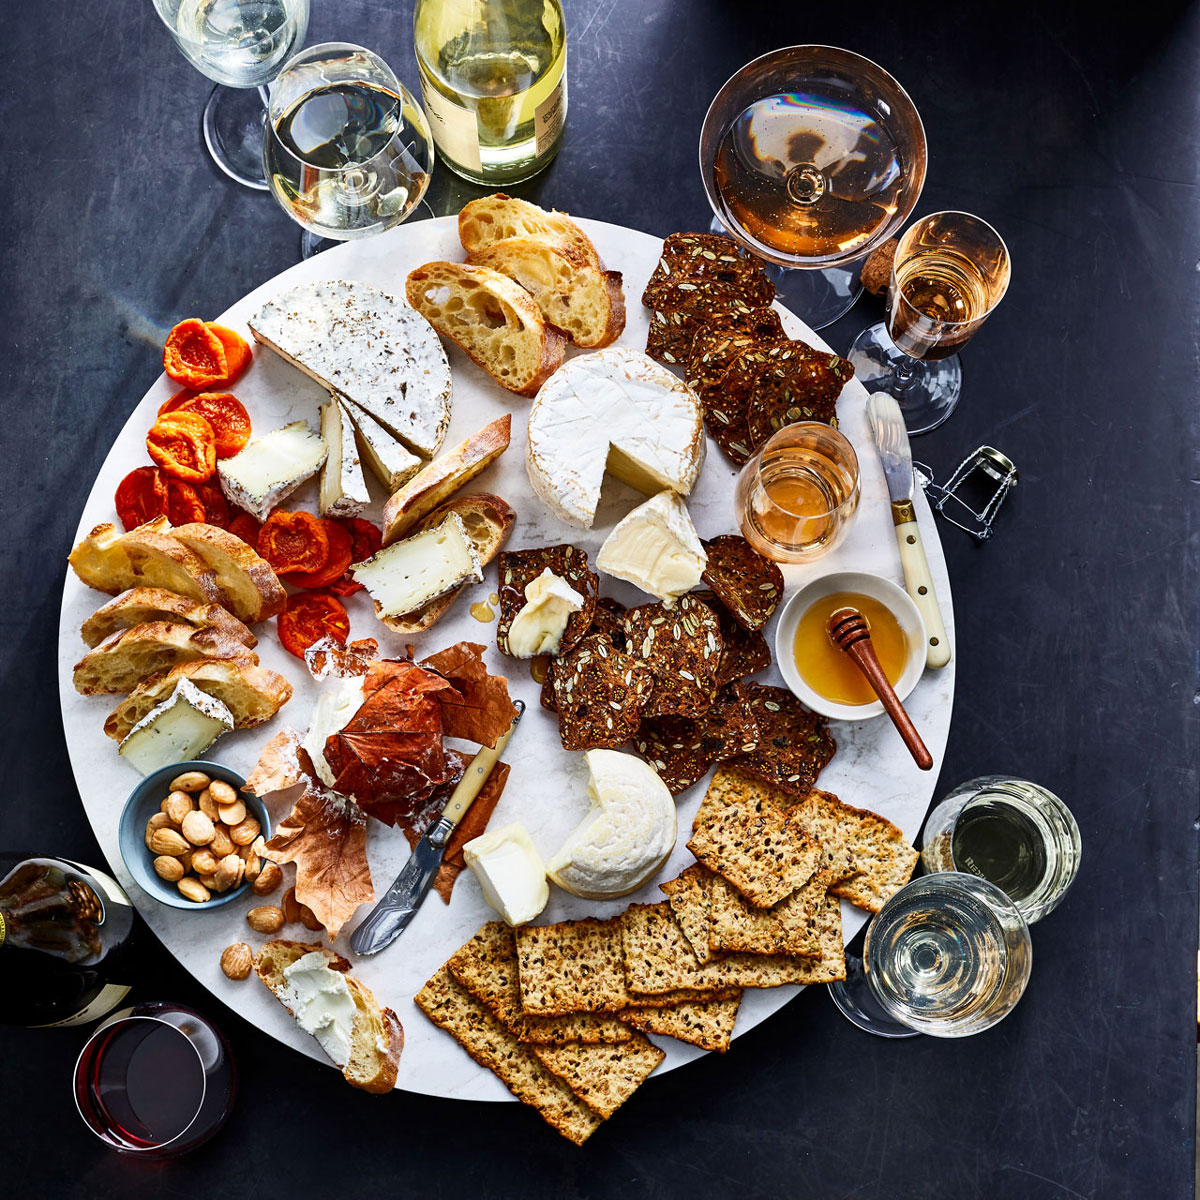 4 Cheese and Wine Pairings for the Ultimate Spring Cheese Board